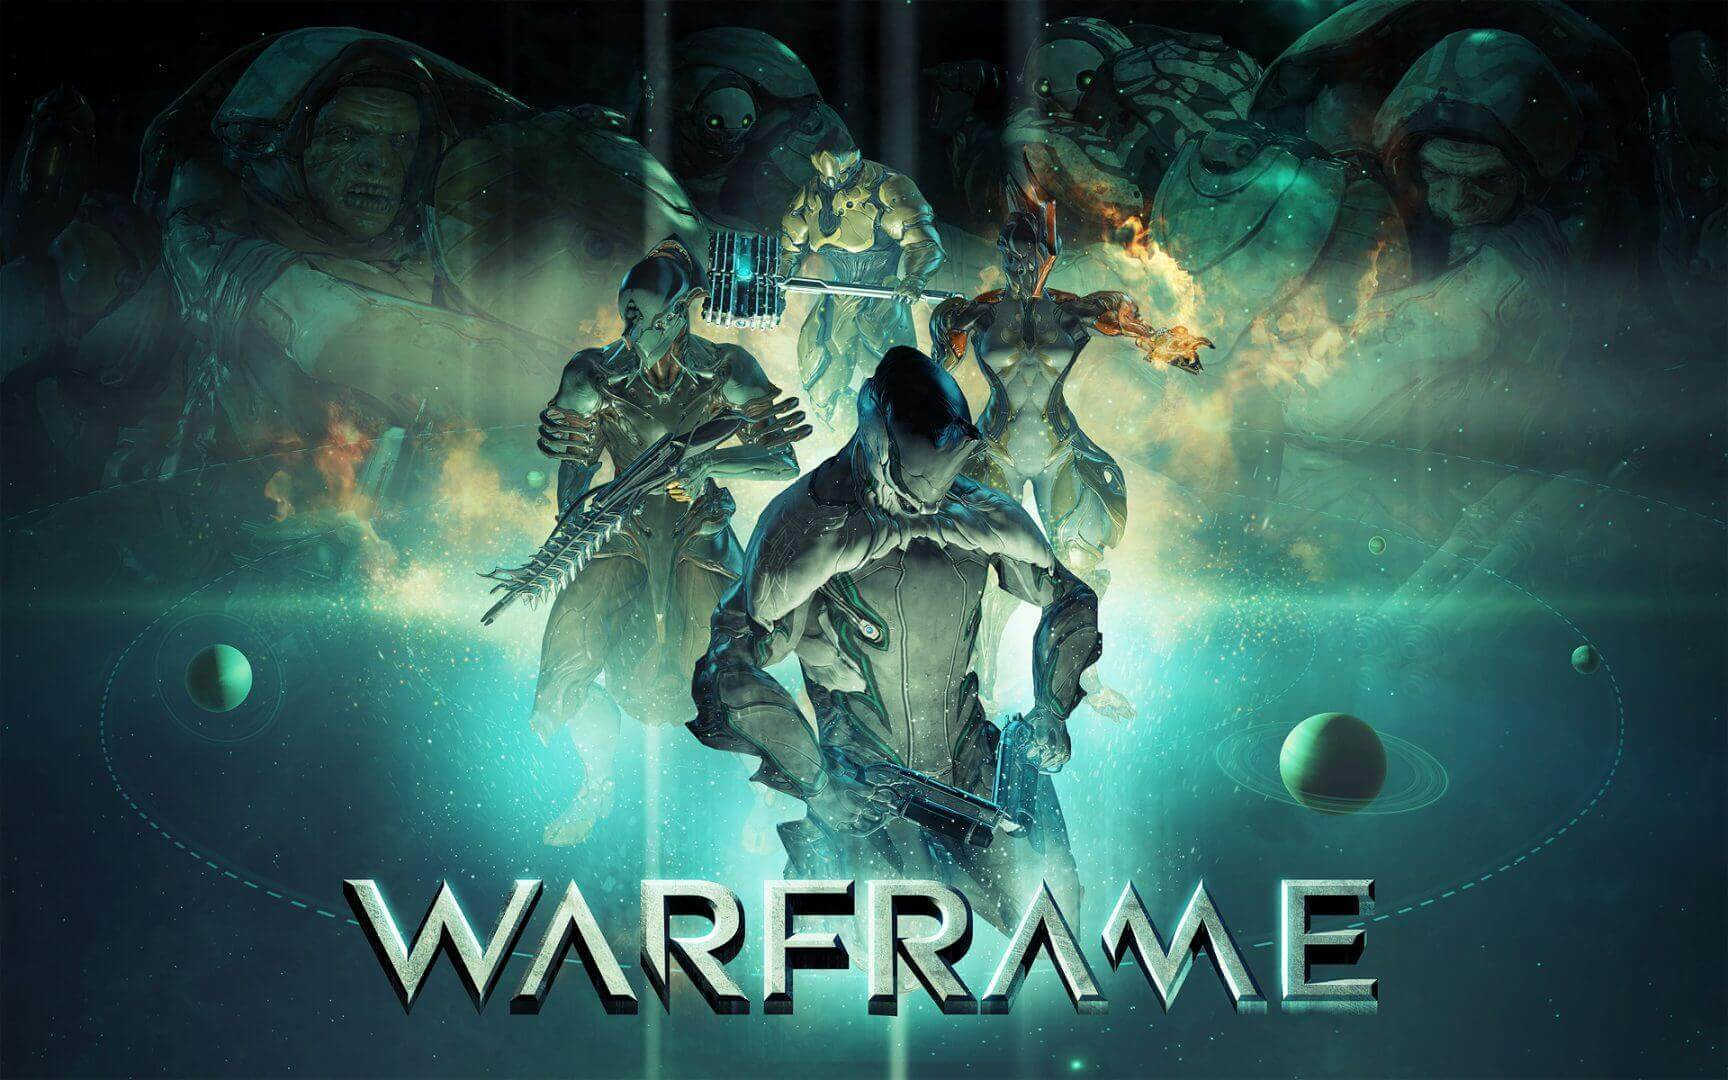 Warframe Gets Echoes Of The Sentient Update